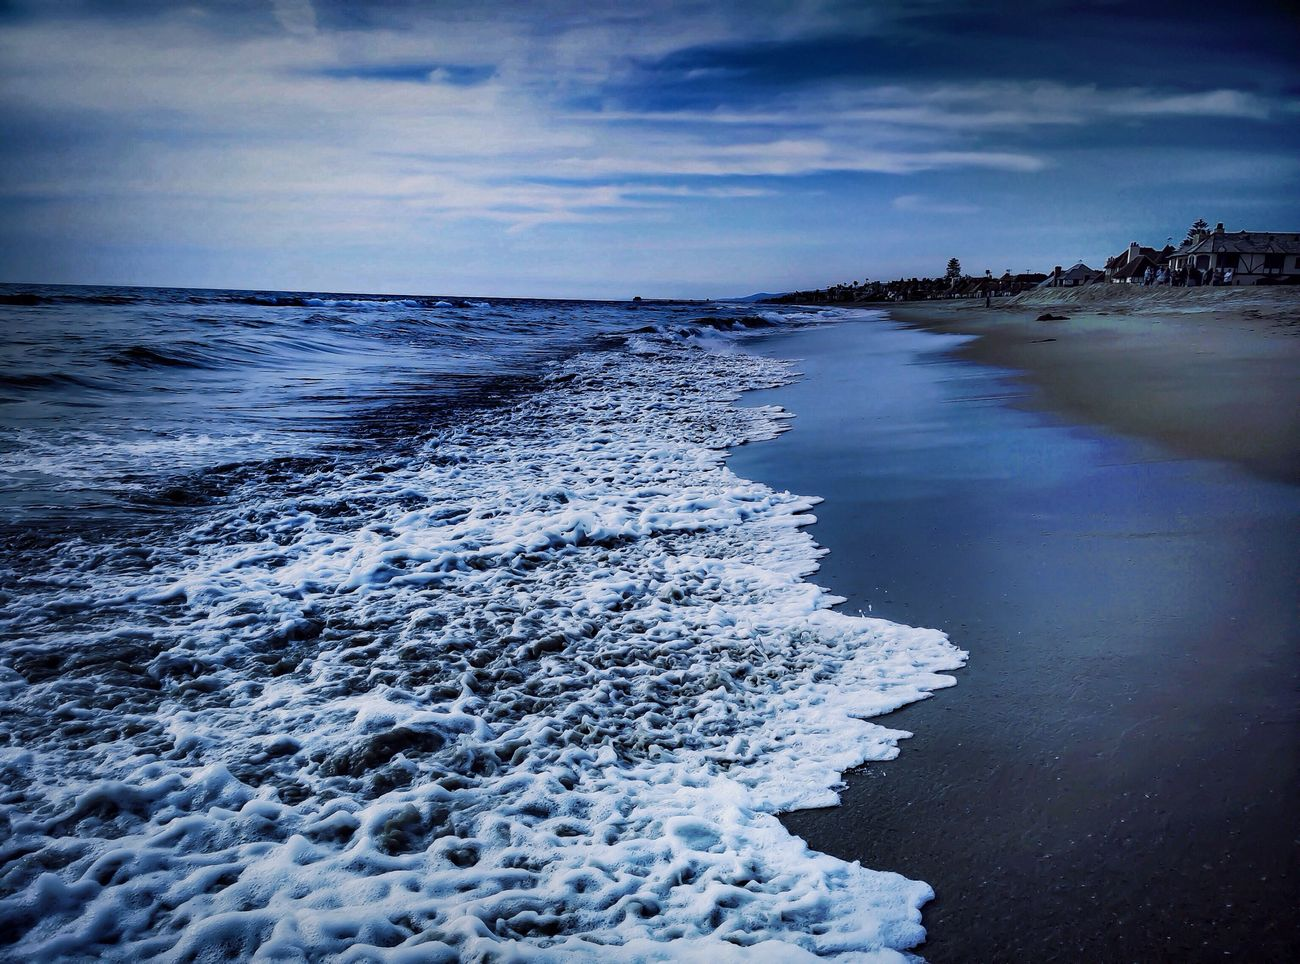 Blue for you 💙 EyeEm Best Shots EyeEm Best Edits EyeEm Nature Lover Beautiful Nature Melancholic Landscapes Dramatic Sky Romantic Landscape Open Edit Clouds And Sky Life Is A Beach